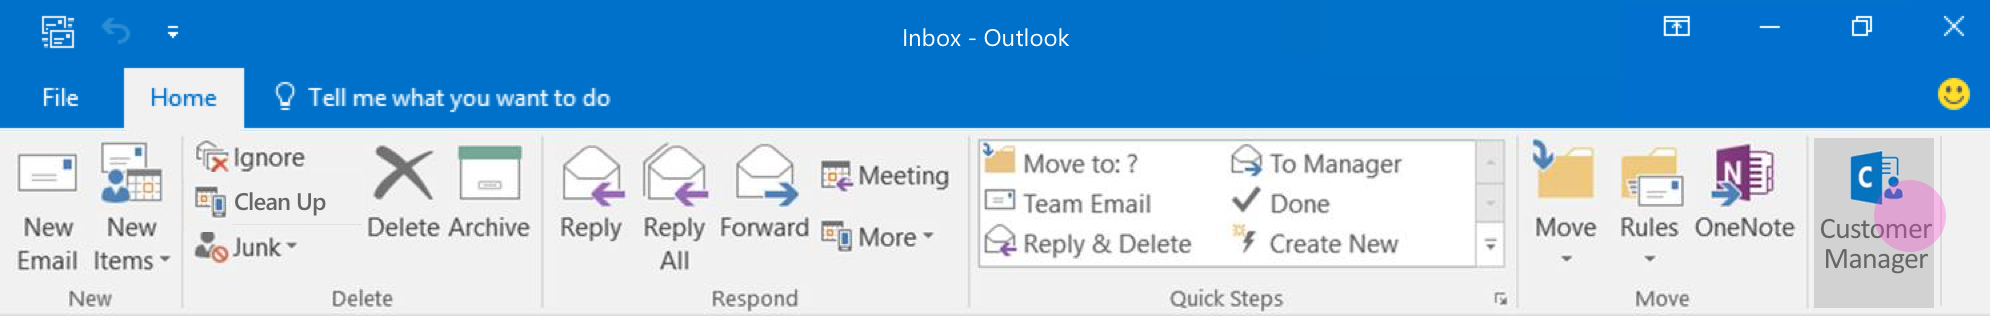 How-to-Install-Outlook-Customer-Manager-2016